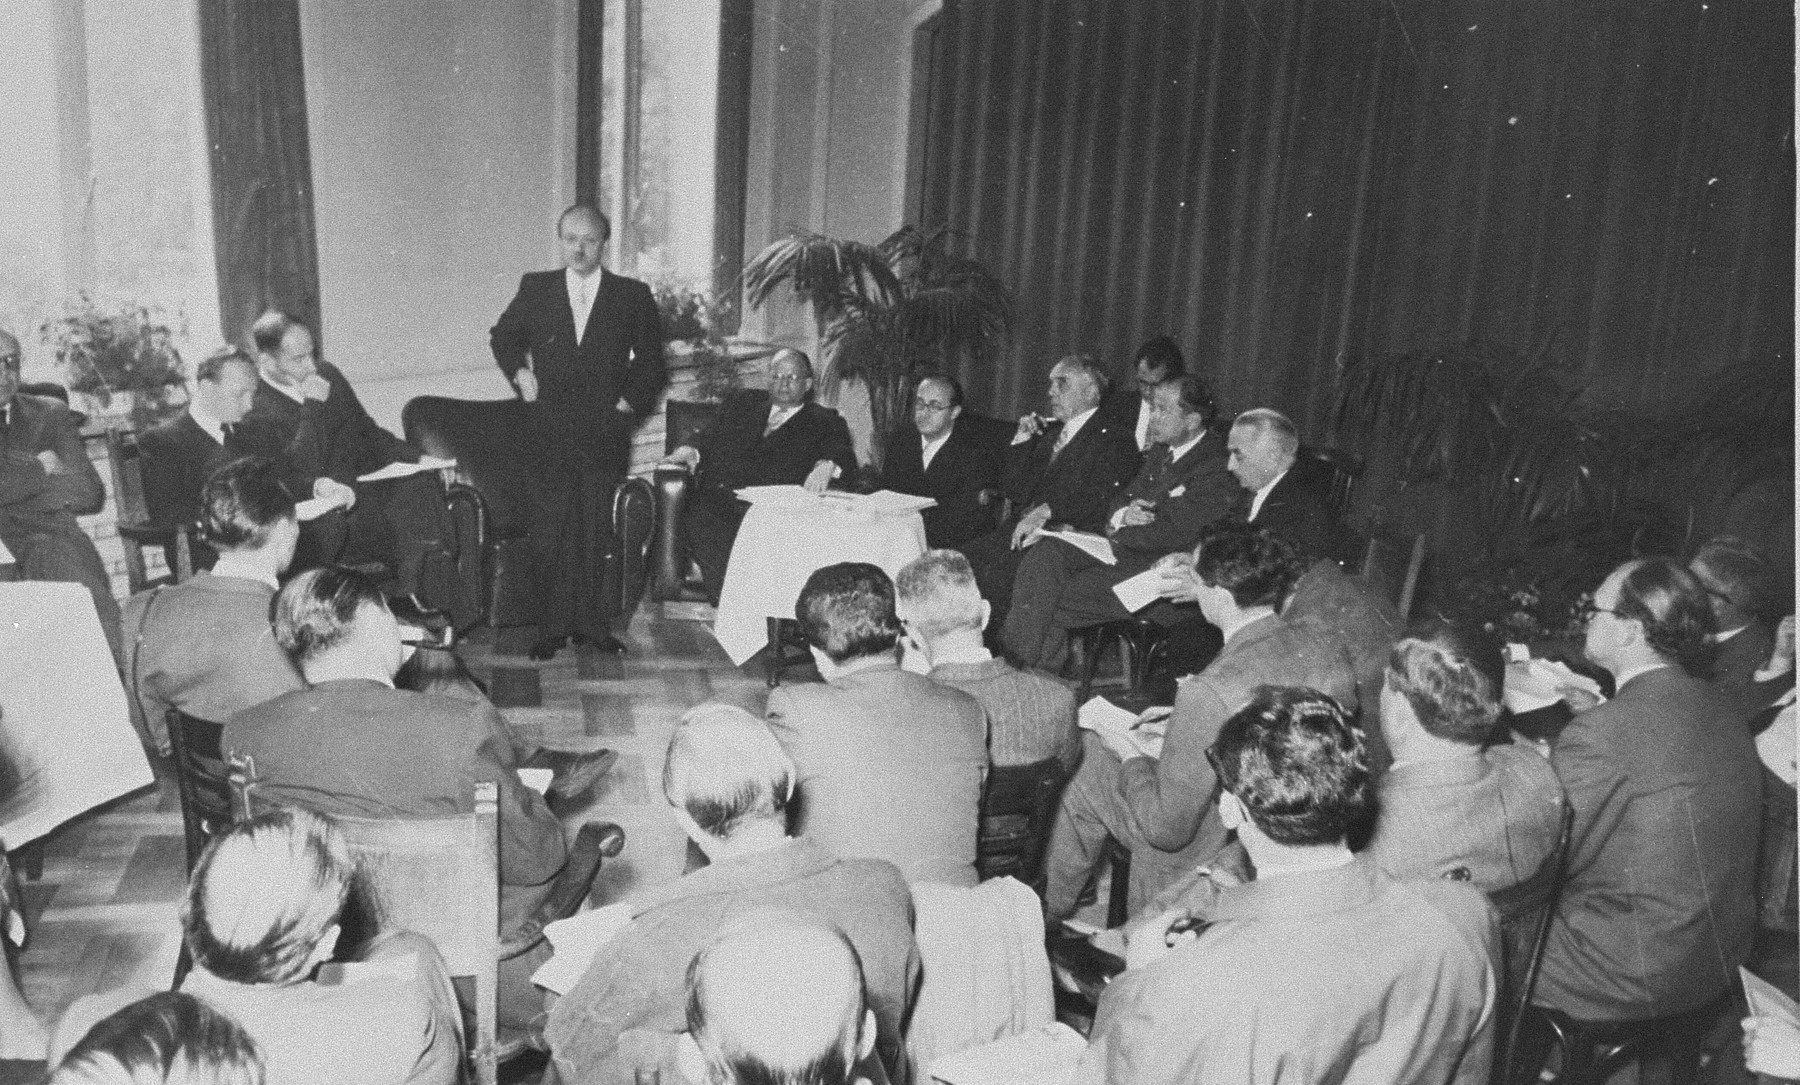 A briefing by members of the Conference on Jewish Material Claims in Luxembourg during the signing of the Reparations Agreement between the German Federal Republic, the State of Israel, and the Conference on Jewish Material Claims.    Among those pictured is Benjamin Ferencz (second from the left).